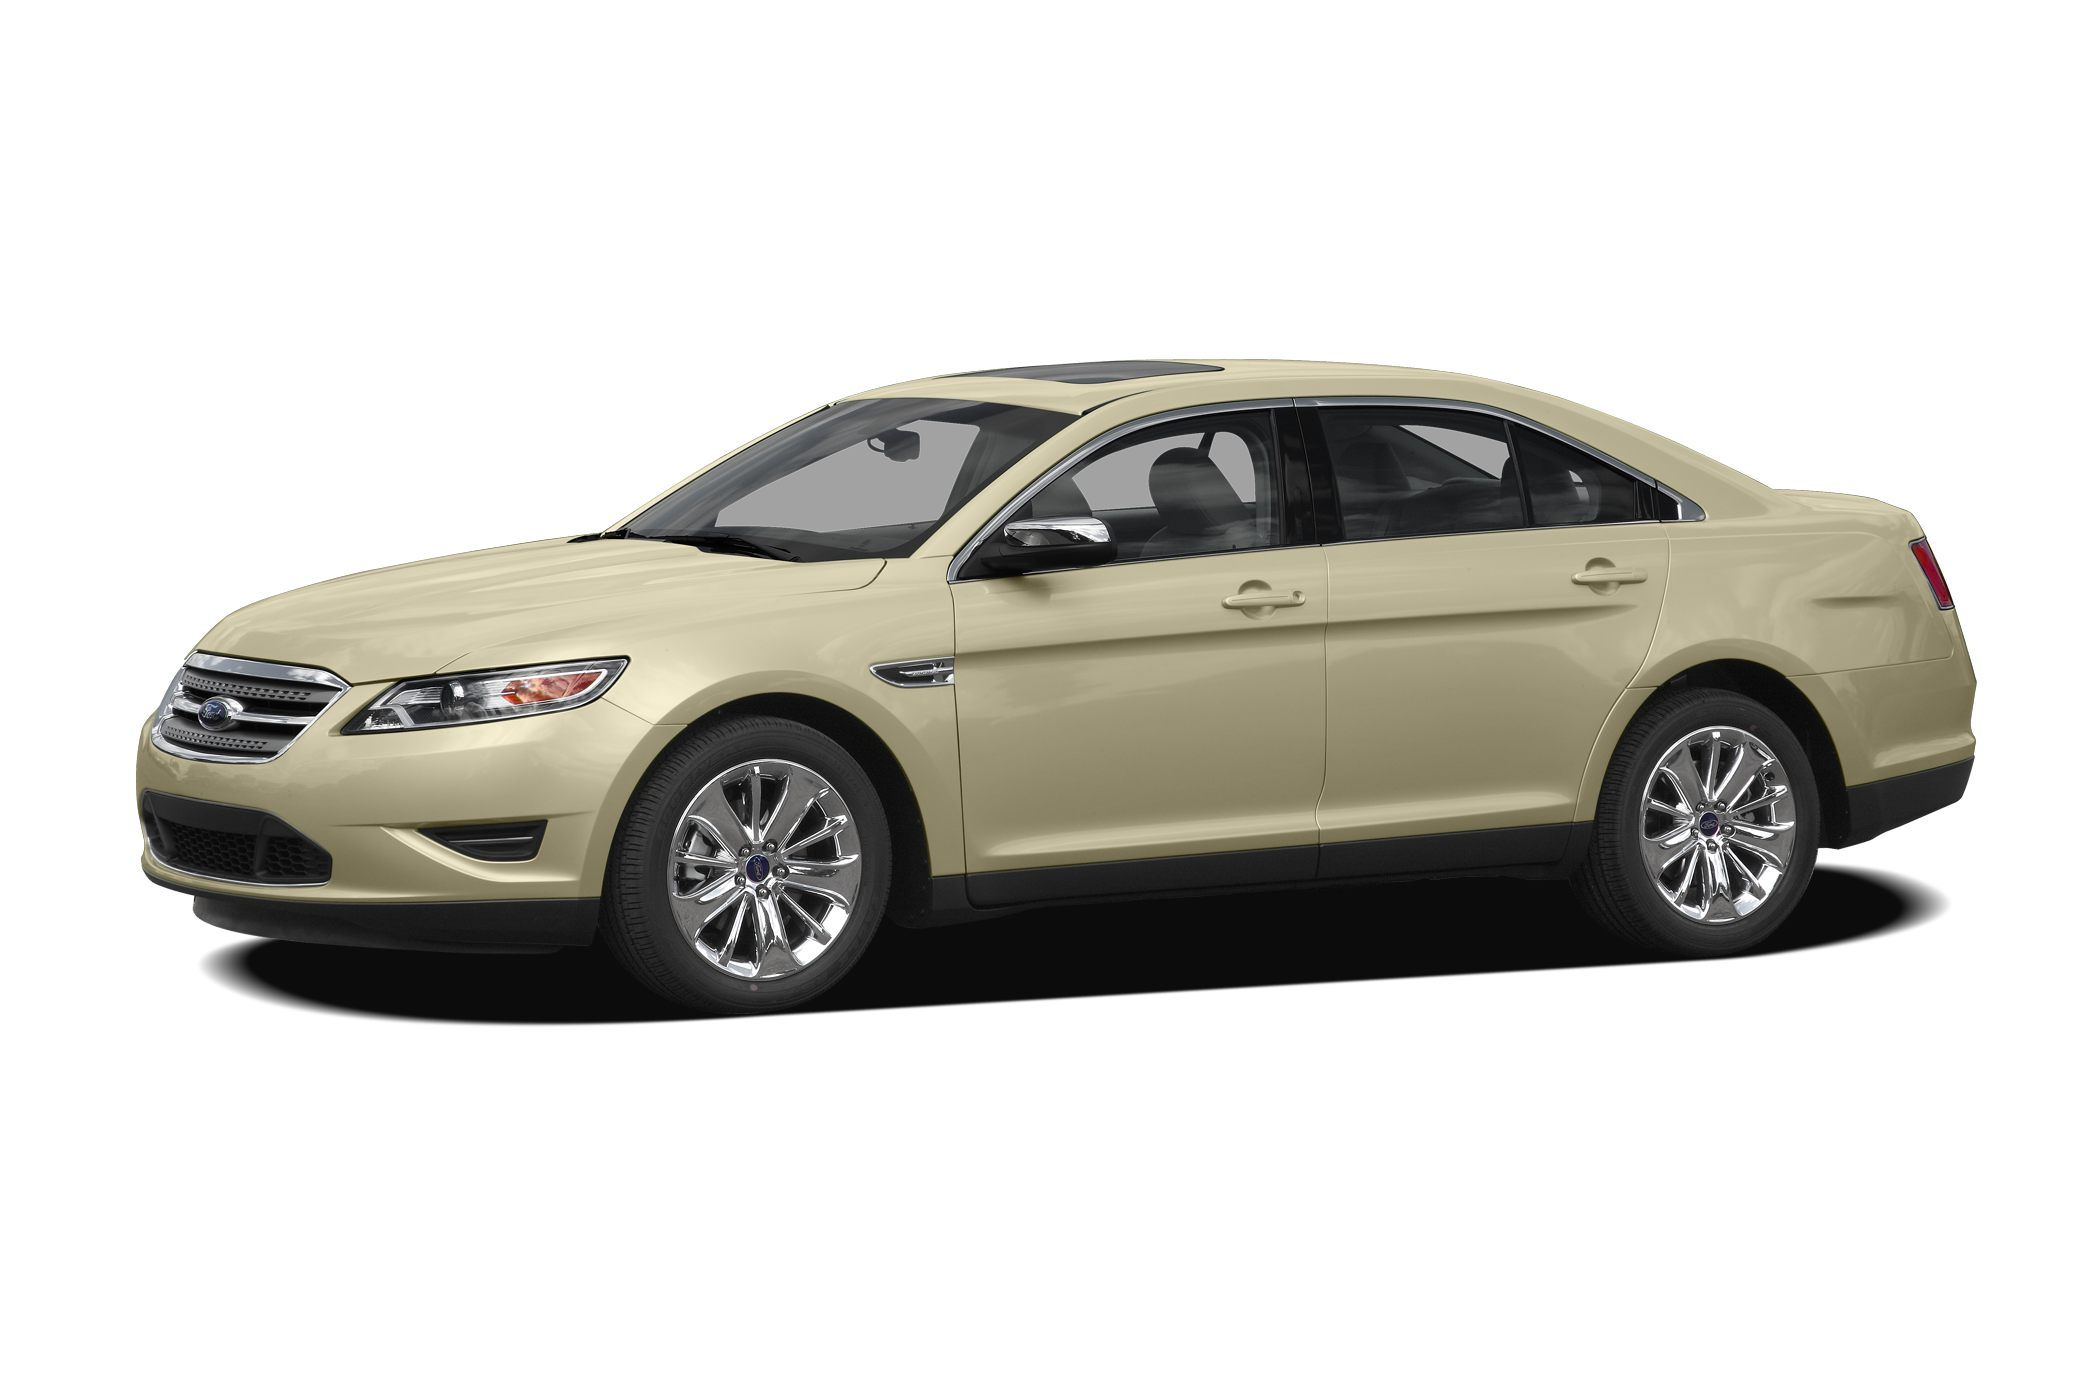 2010 Ford Taurus SEL Sedan for sale in Santa Maria for $12,595 with 108,757 miles